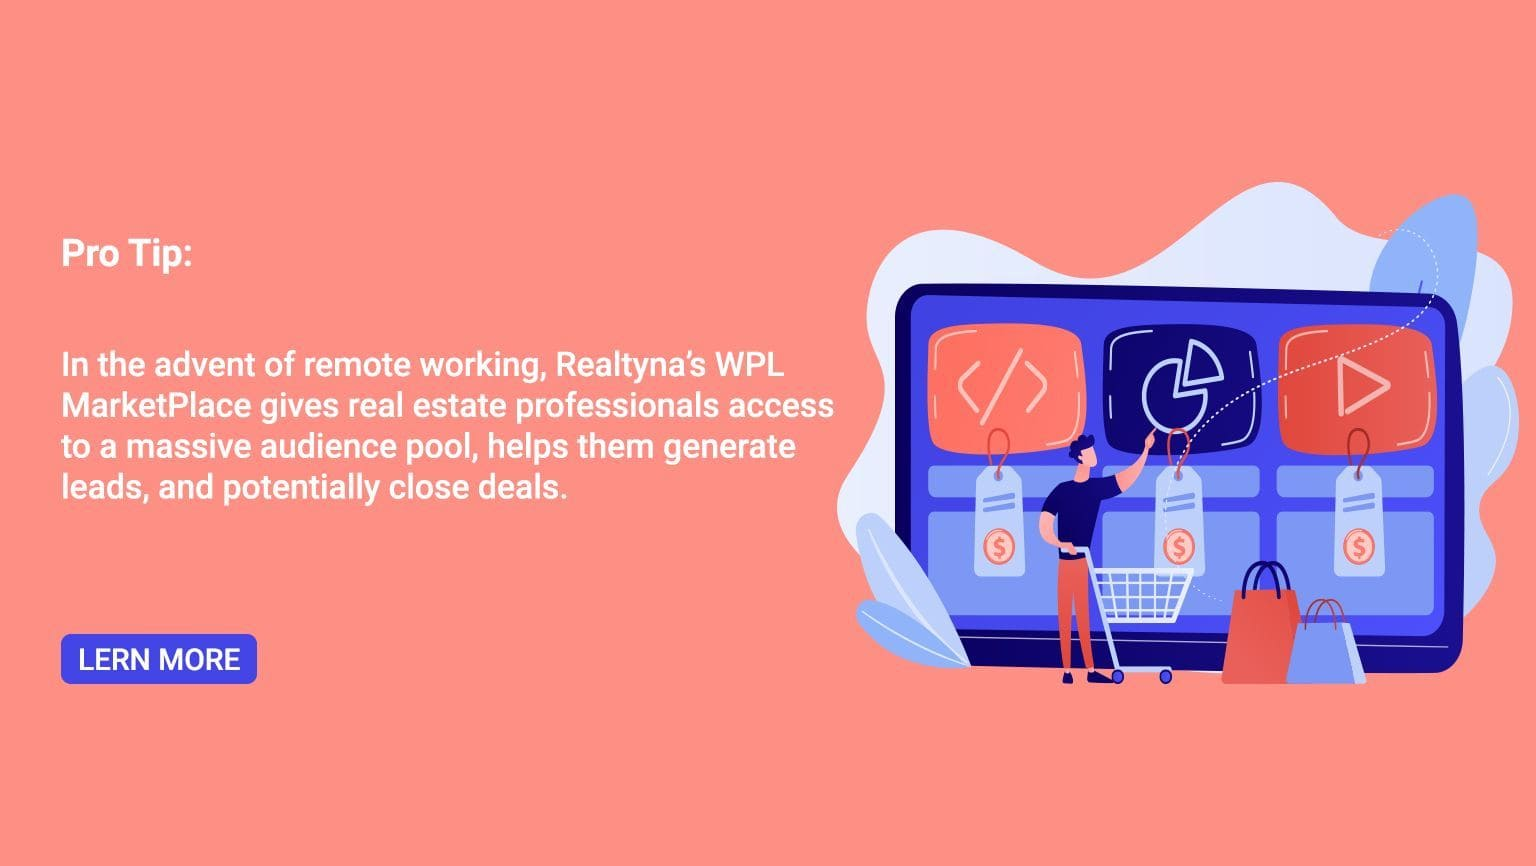 Pro Tip: In the advent of remote working, Realtyna's WPL MarketPlace gives real estate professionals access to a massive audience pool, helps them generate leads, and potentially close deals.